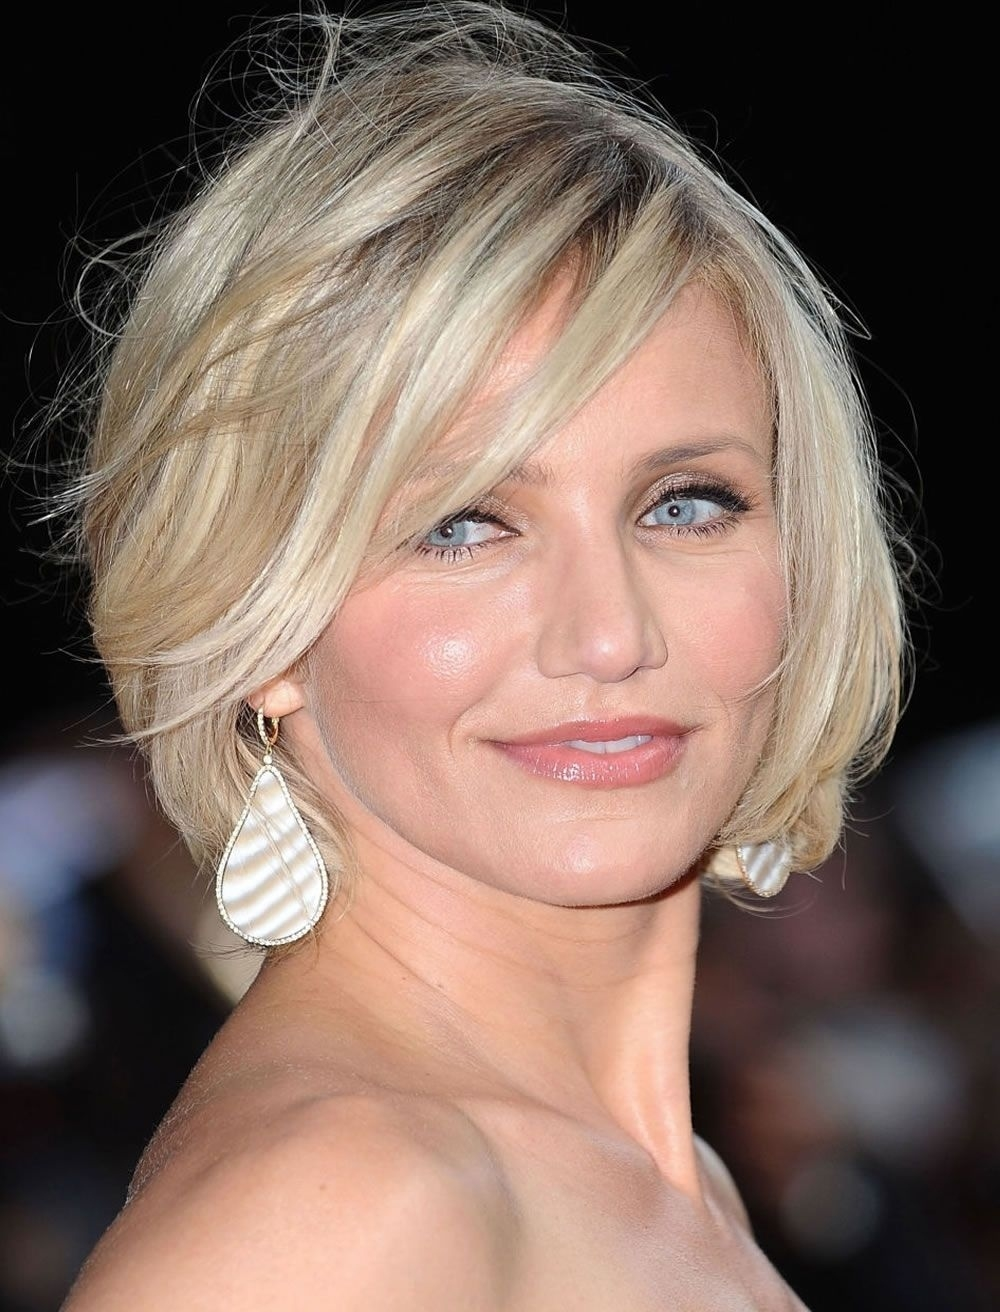 Bob Hairstyles For Older Women Over 40 To 60 Years 2017-2018 With for 2018 Haircuts Female Over 40